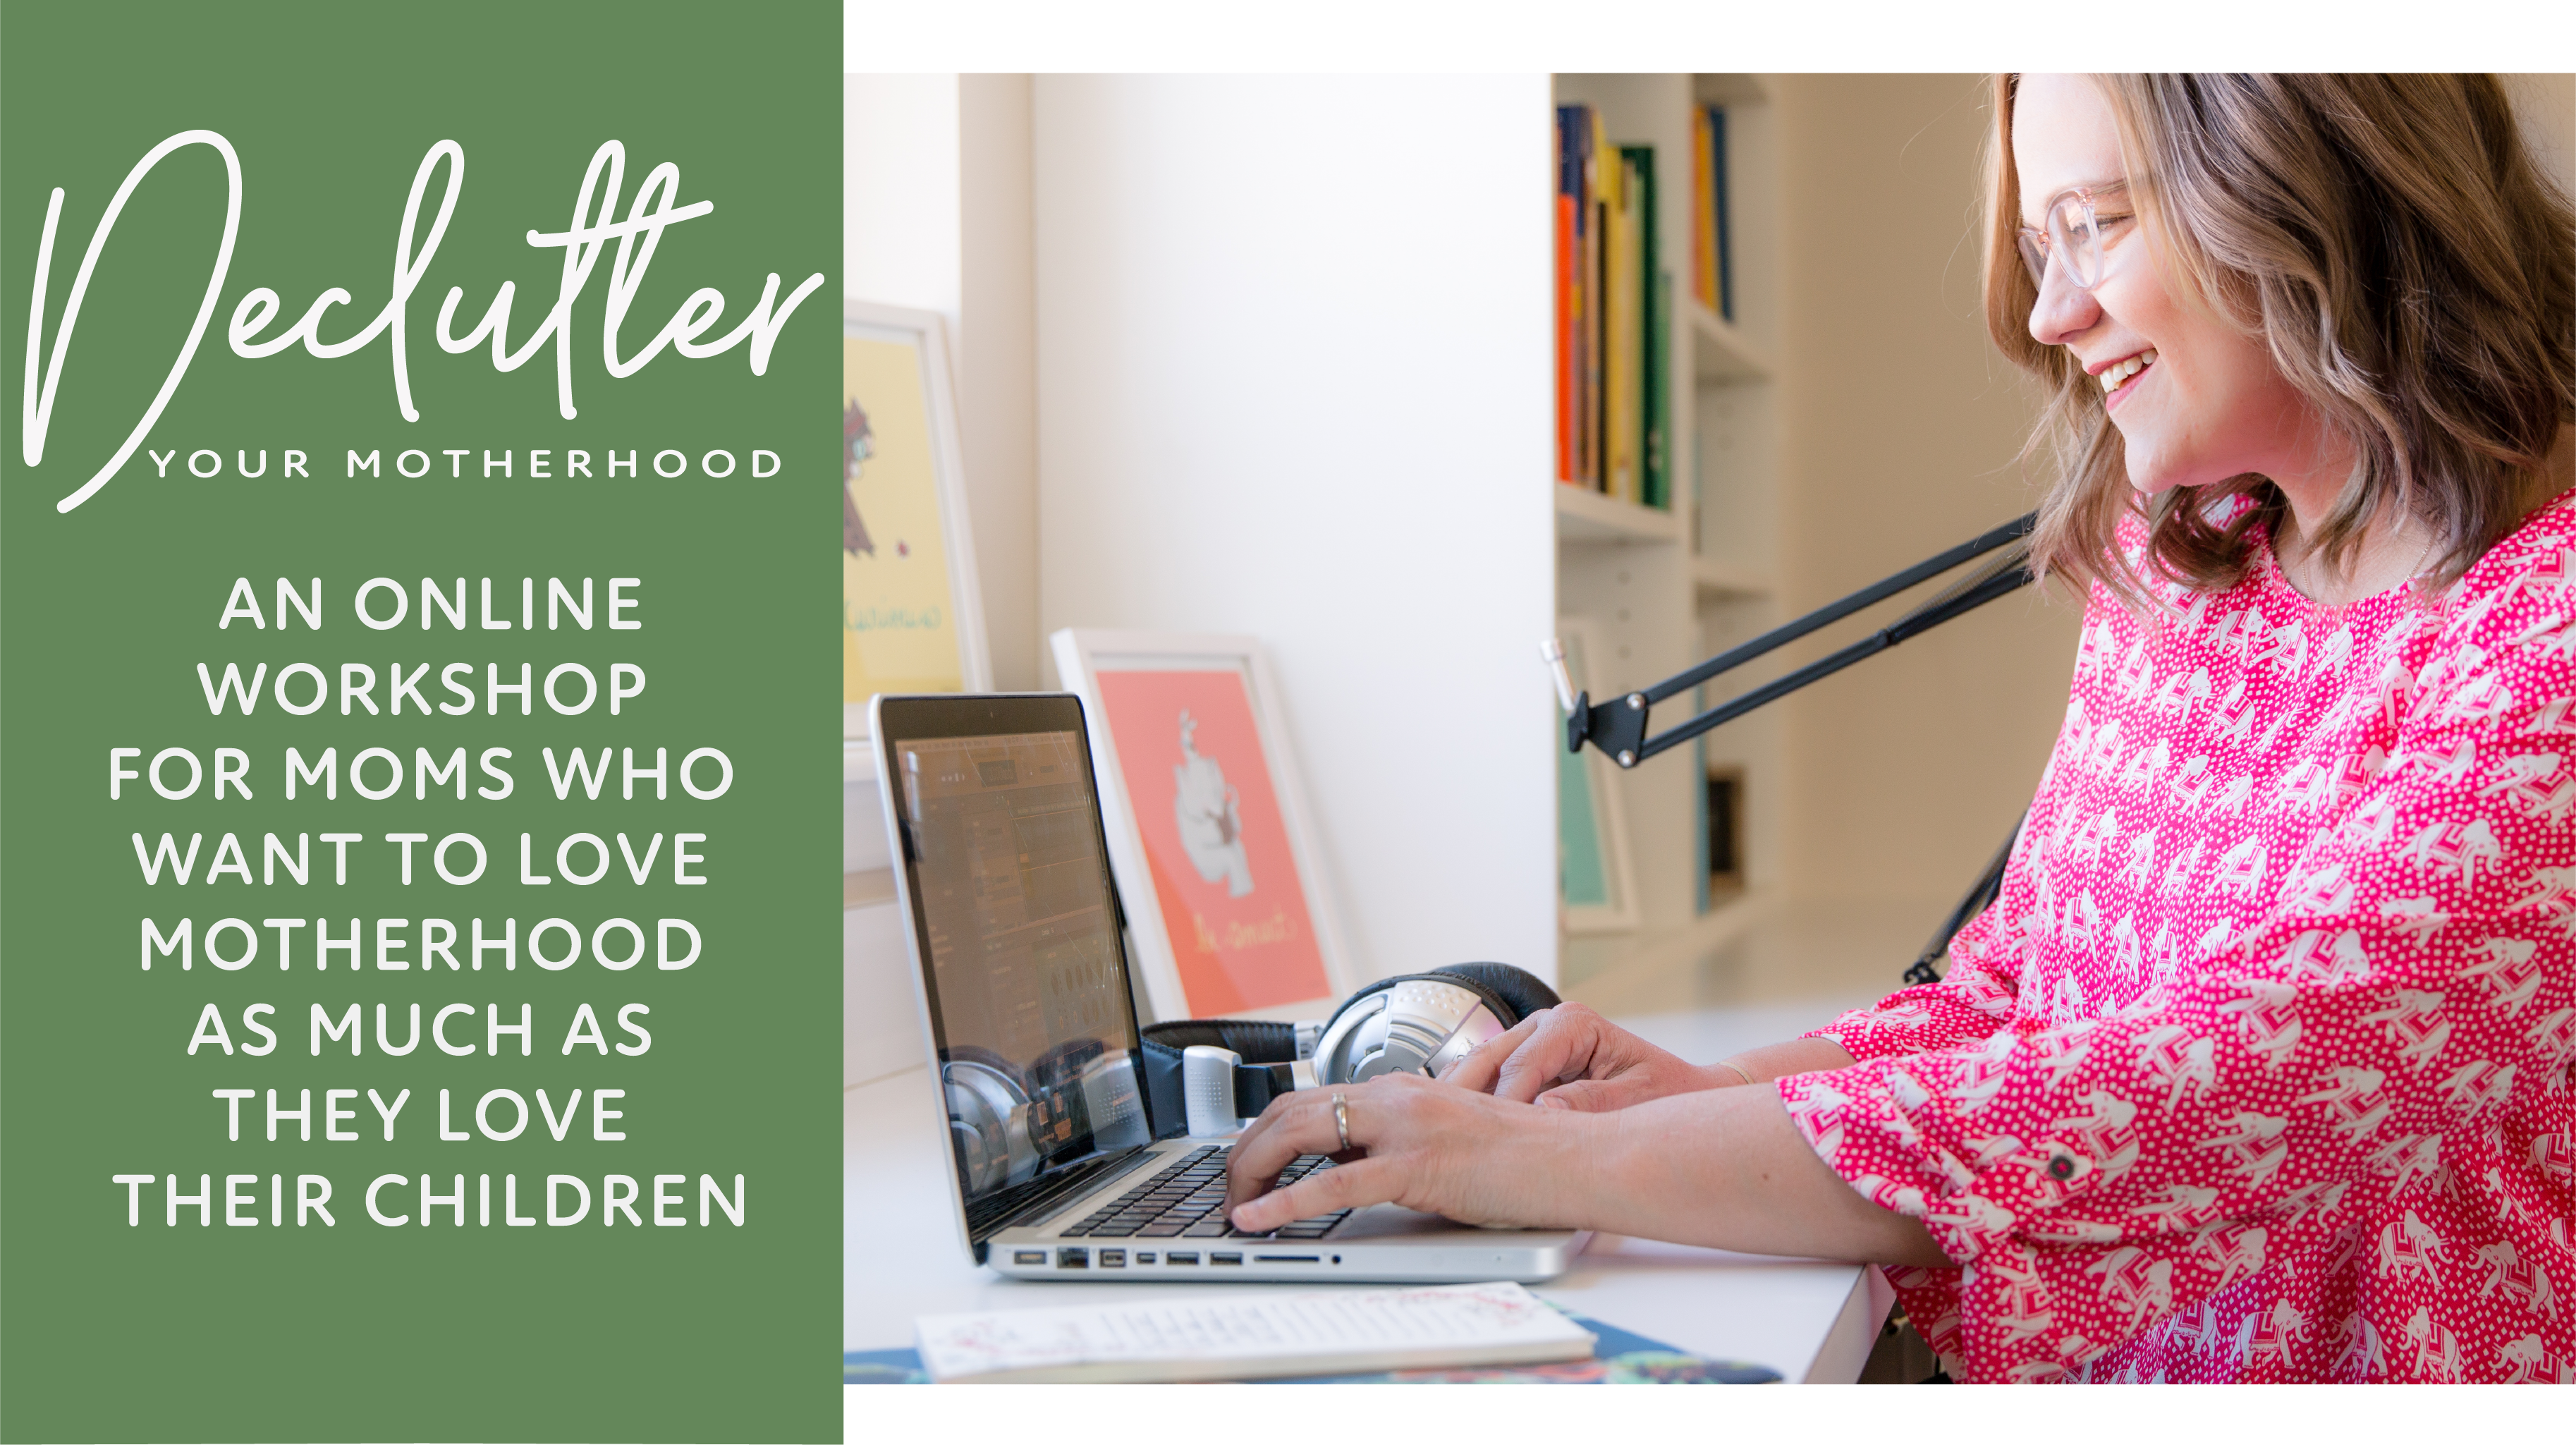 Online workshop with Rachel Nielson, host of 3 in 30 Podcast, a top Motherhood Podcast, and presenter at Declutter Your Motherhood Workshop.